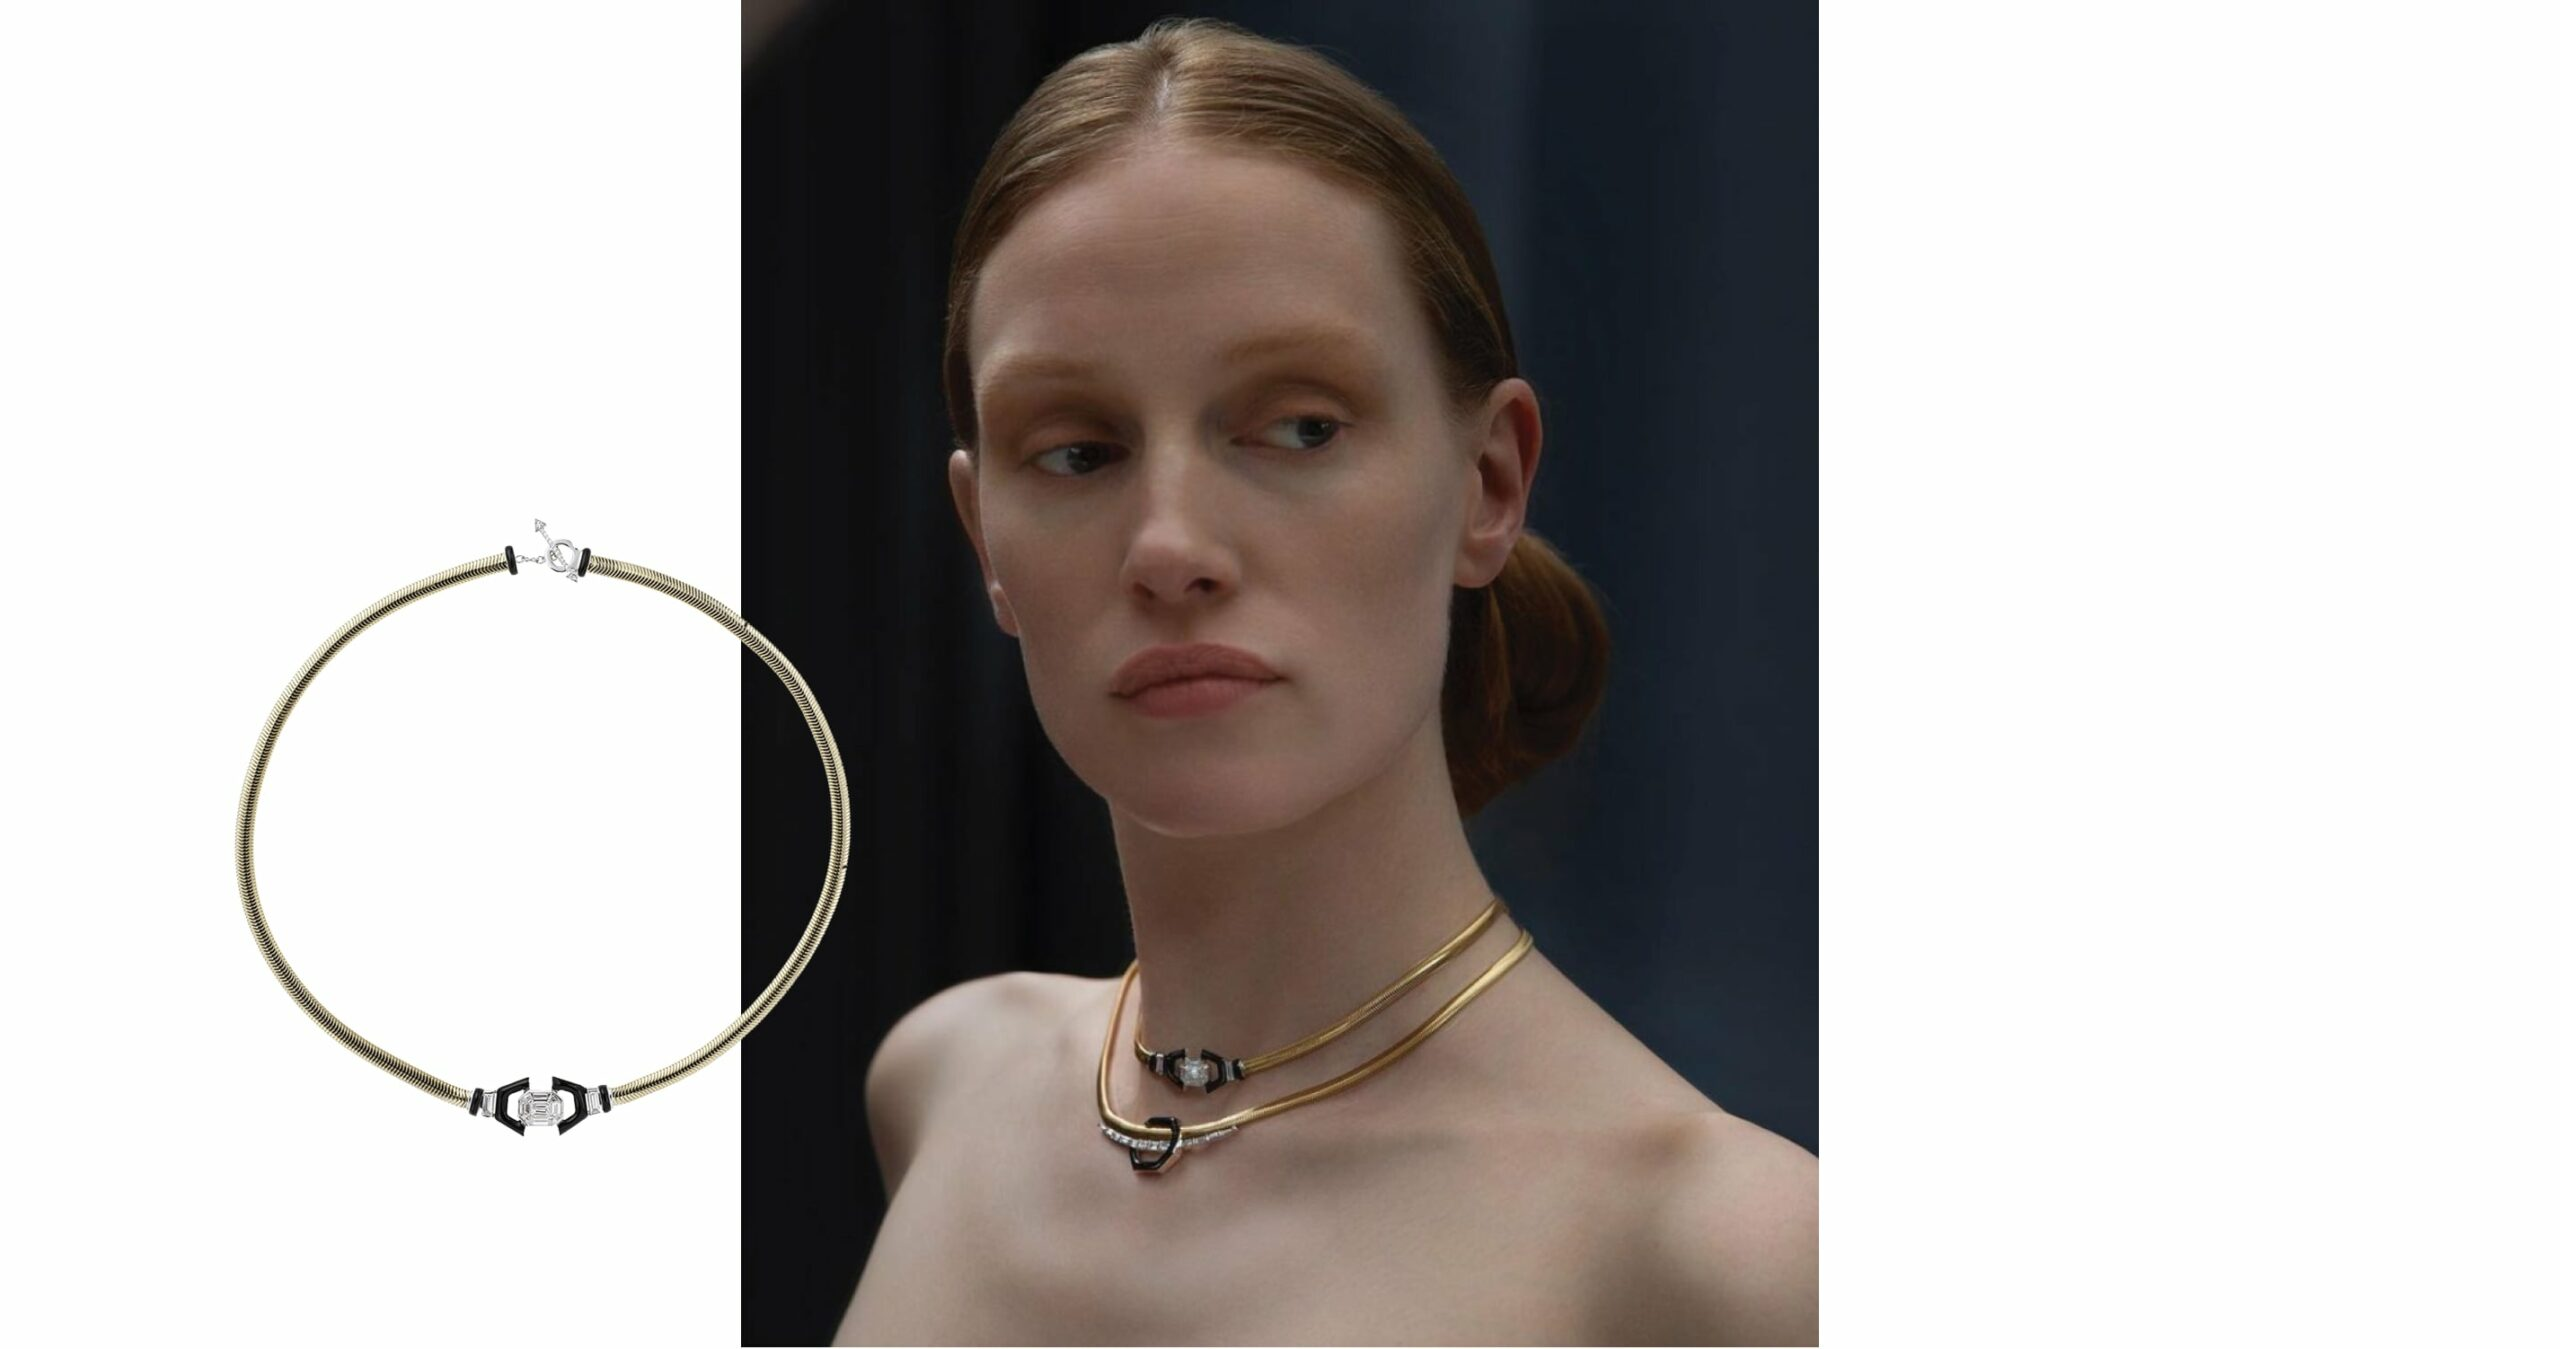 Feelings Collection Diamond Choker Necklace from Nikos Koulis featuring a gold band with a central diamond surrounded in black enamel